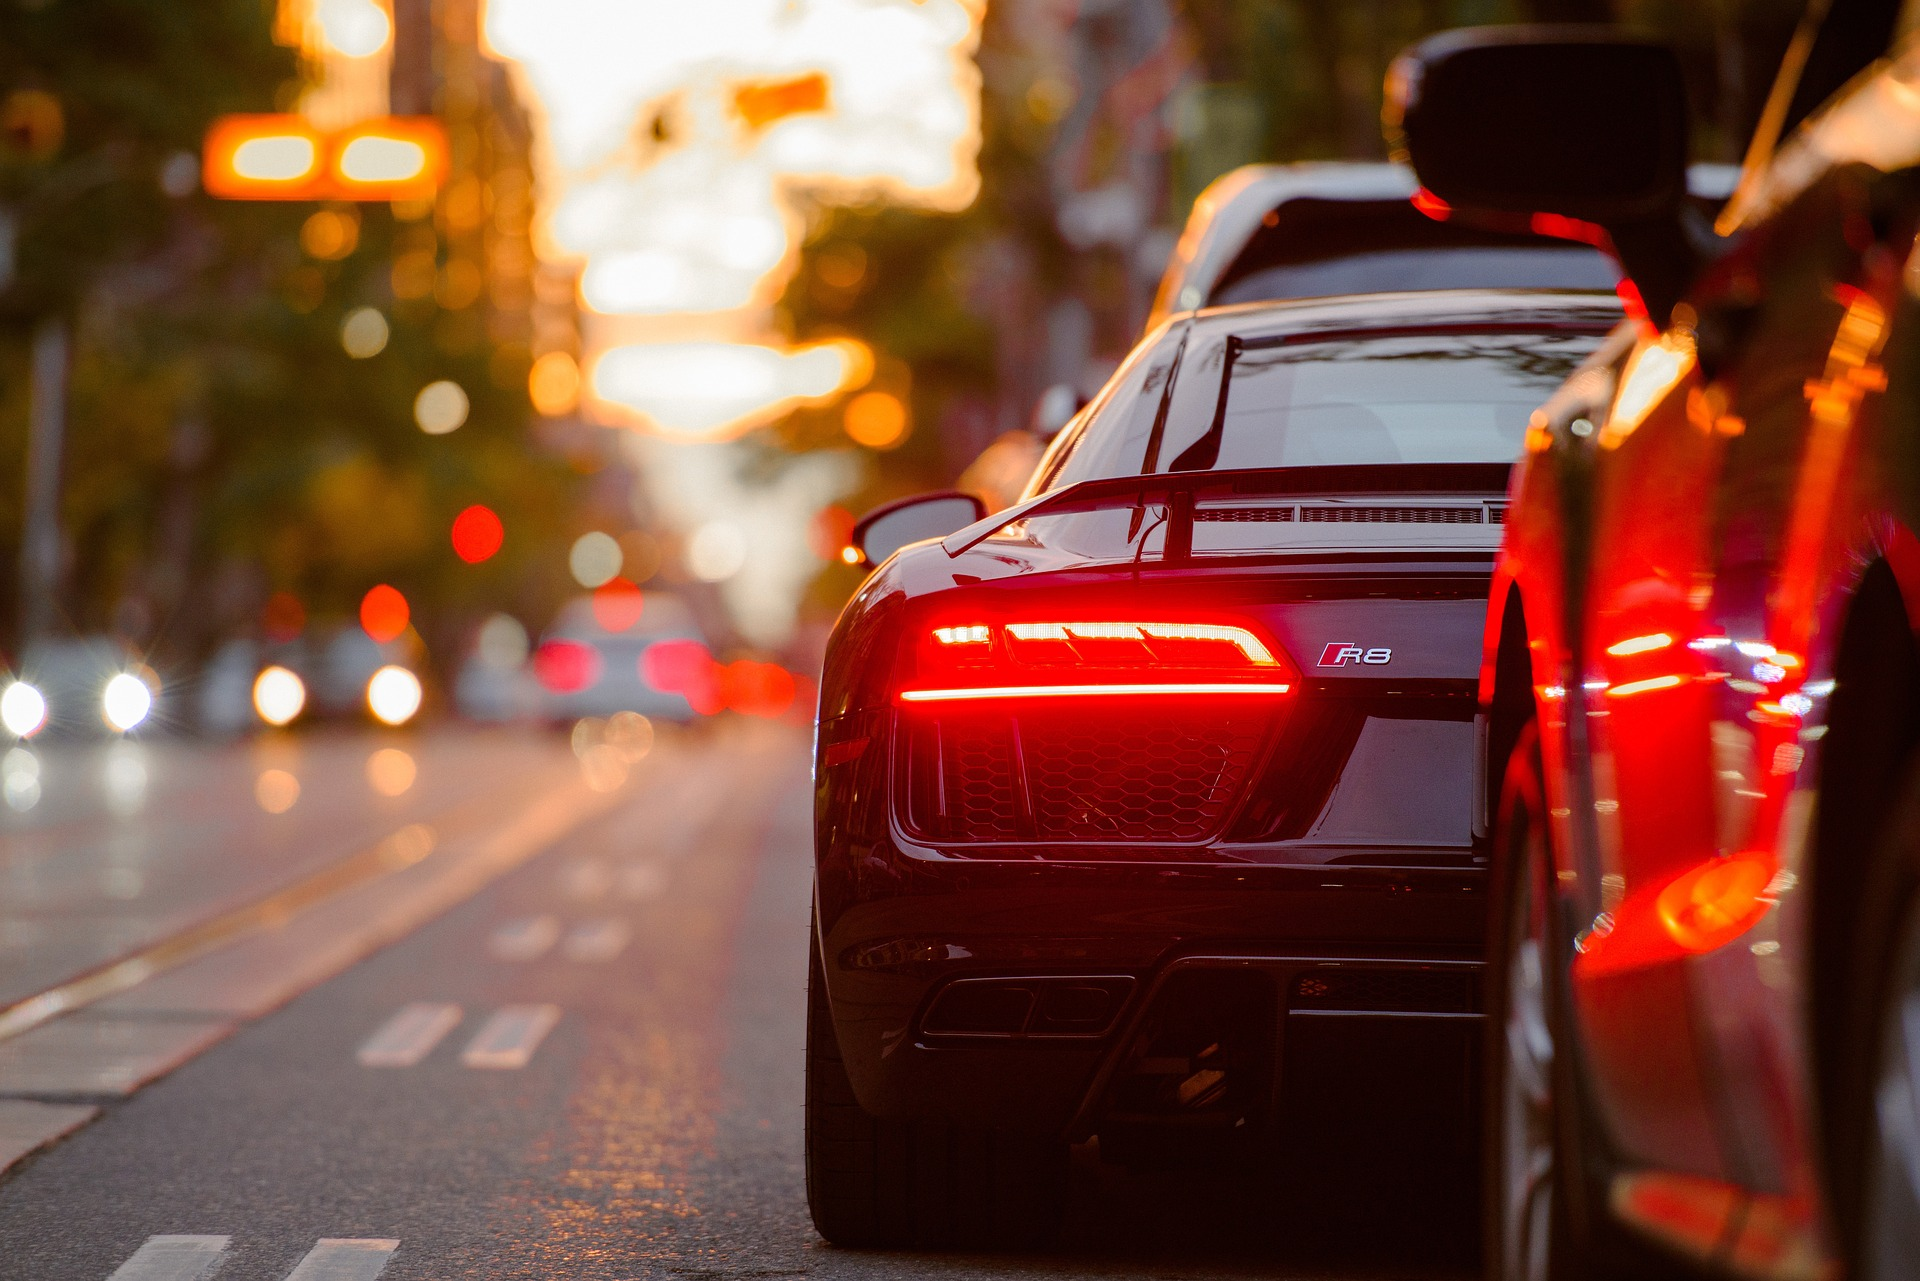 What should I do if I'm involved in a Road Traffic Accident?